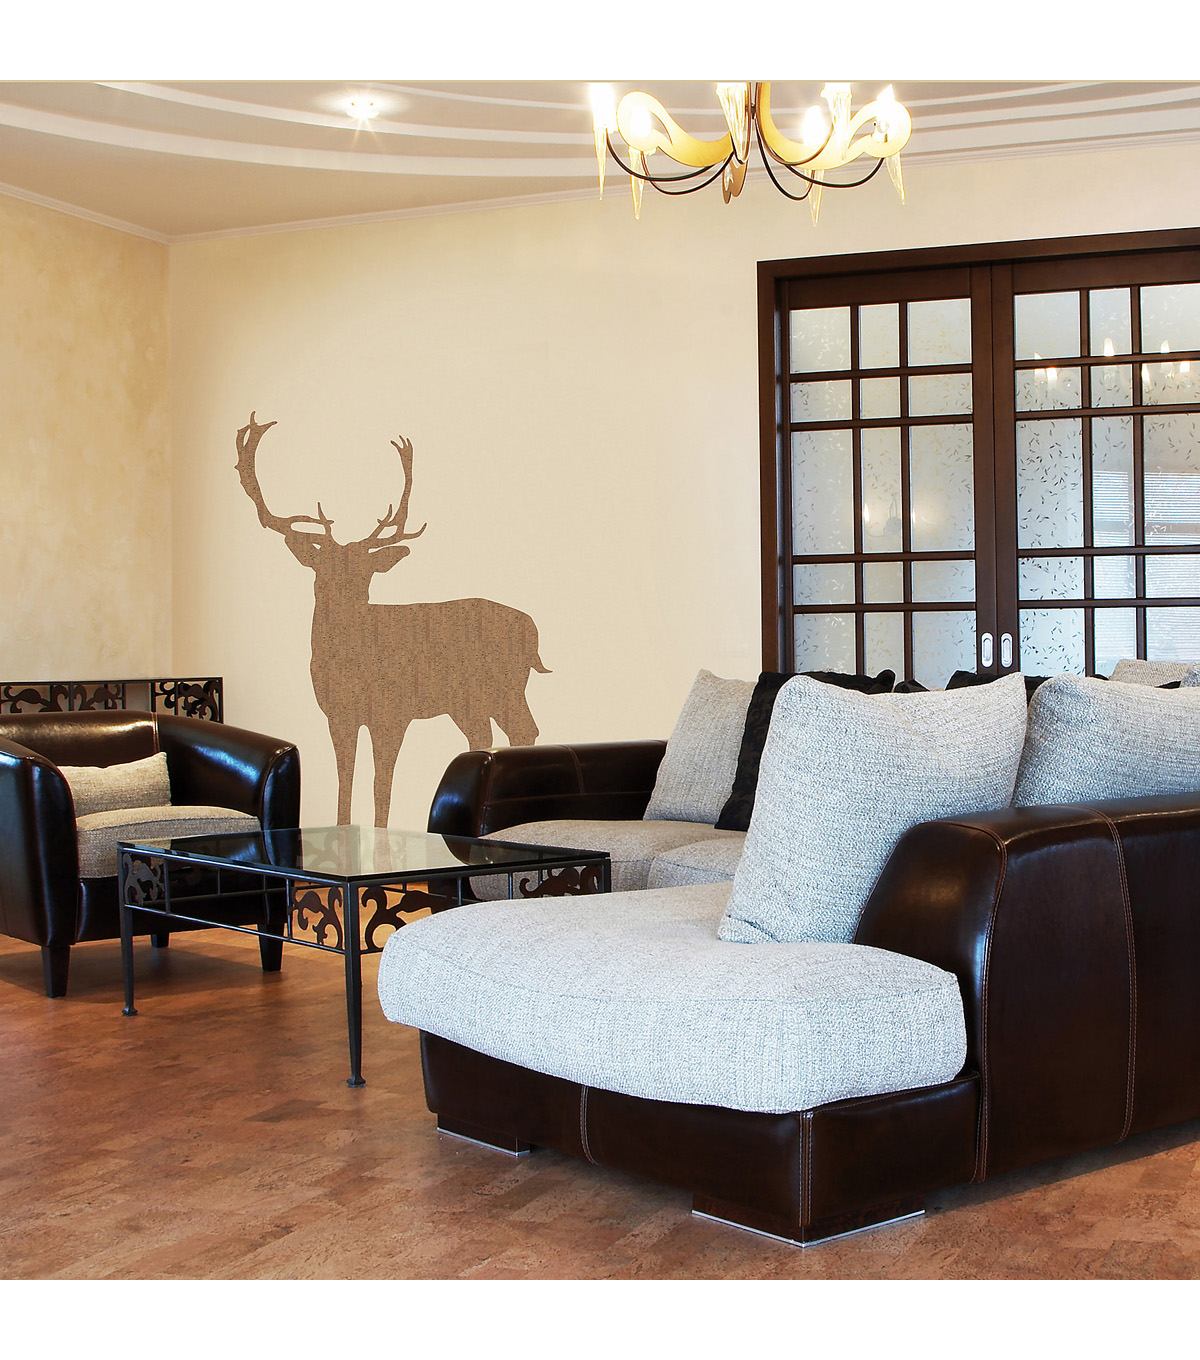 Home Decor Deer Cork Deluxe Wall Decal, 4 Piece Set